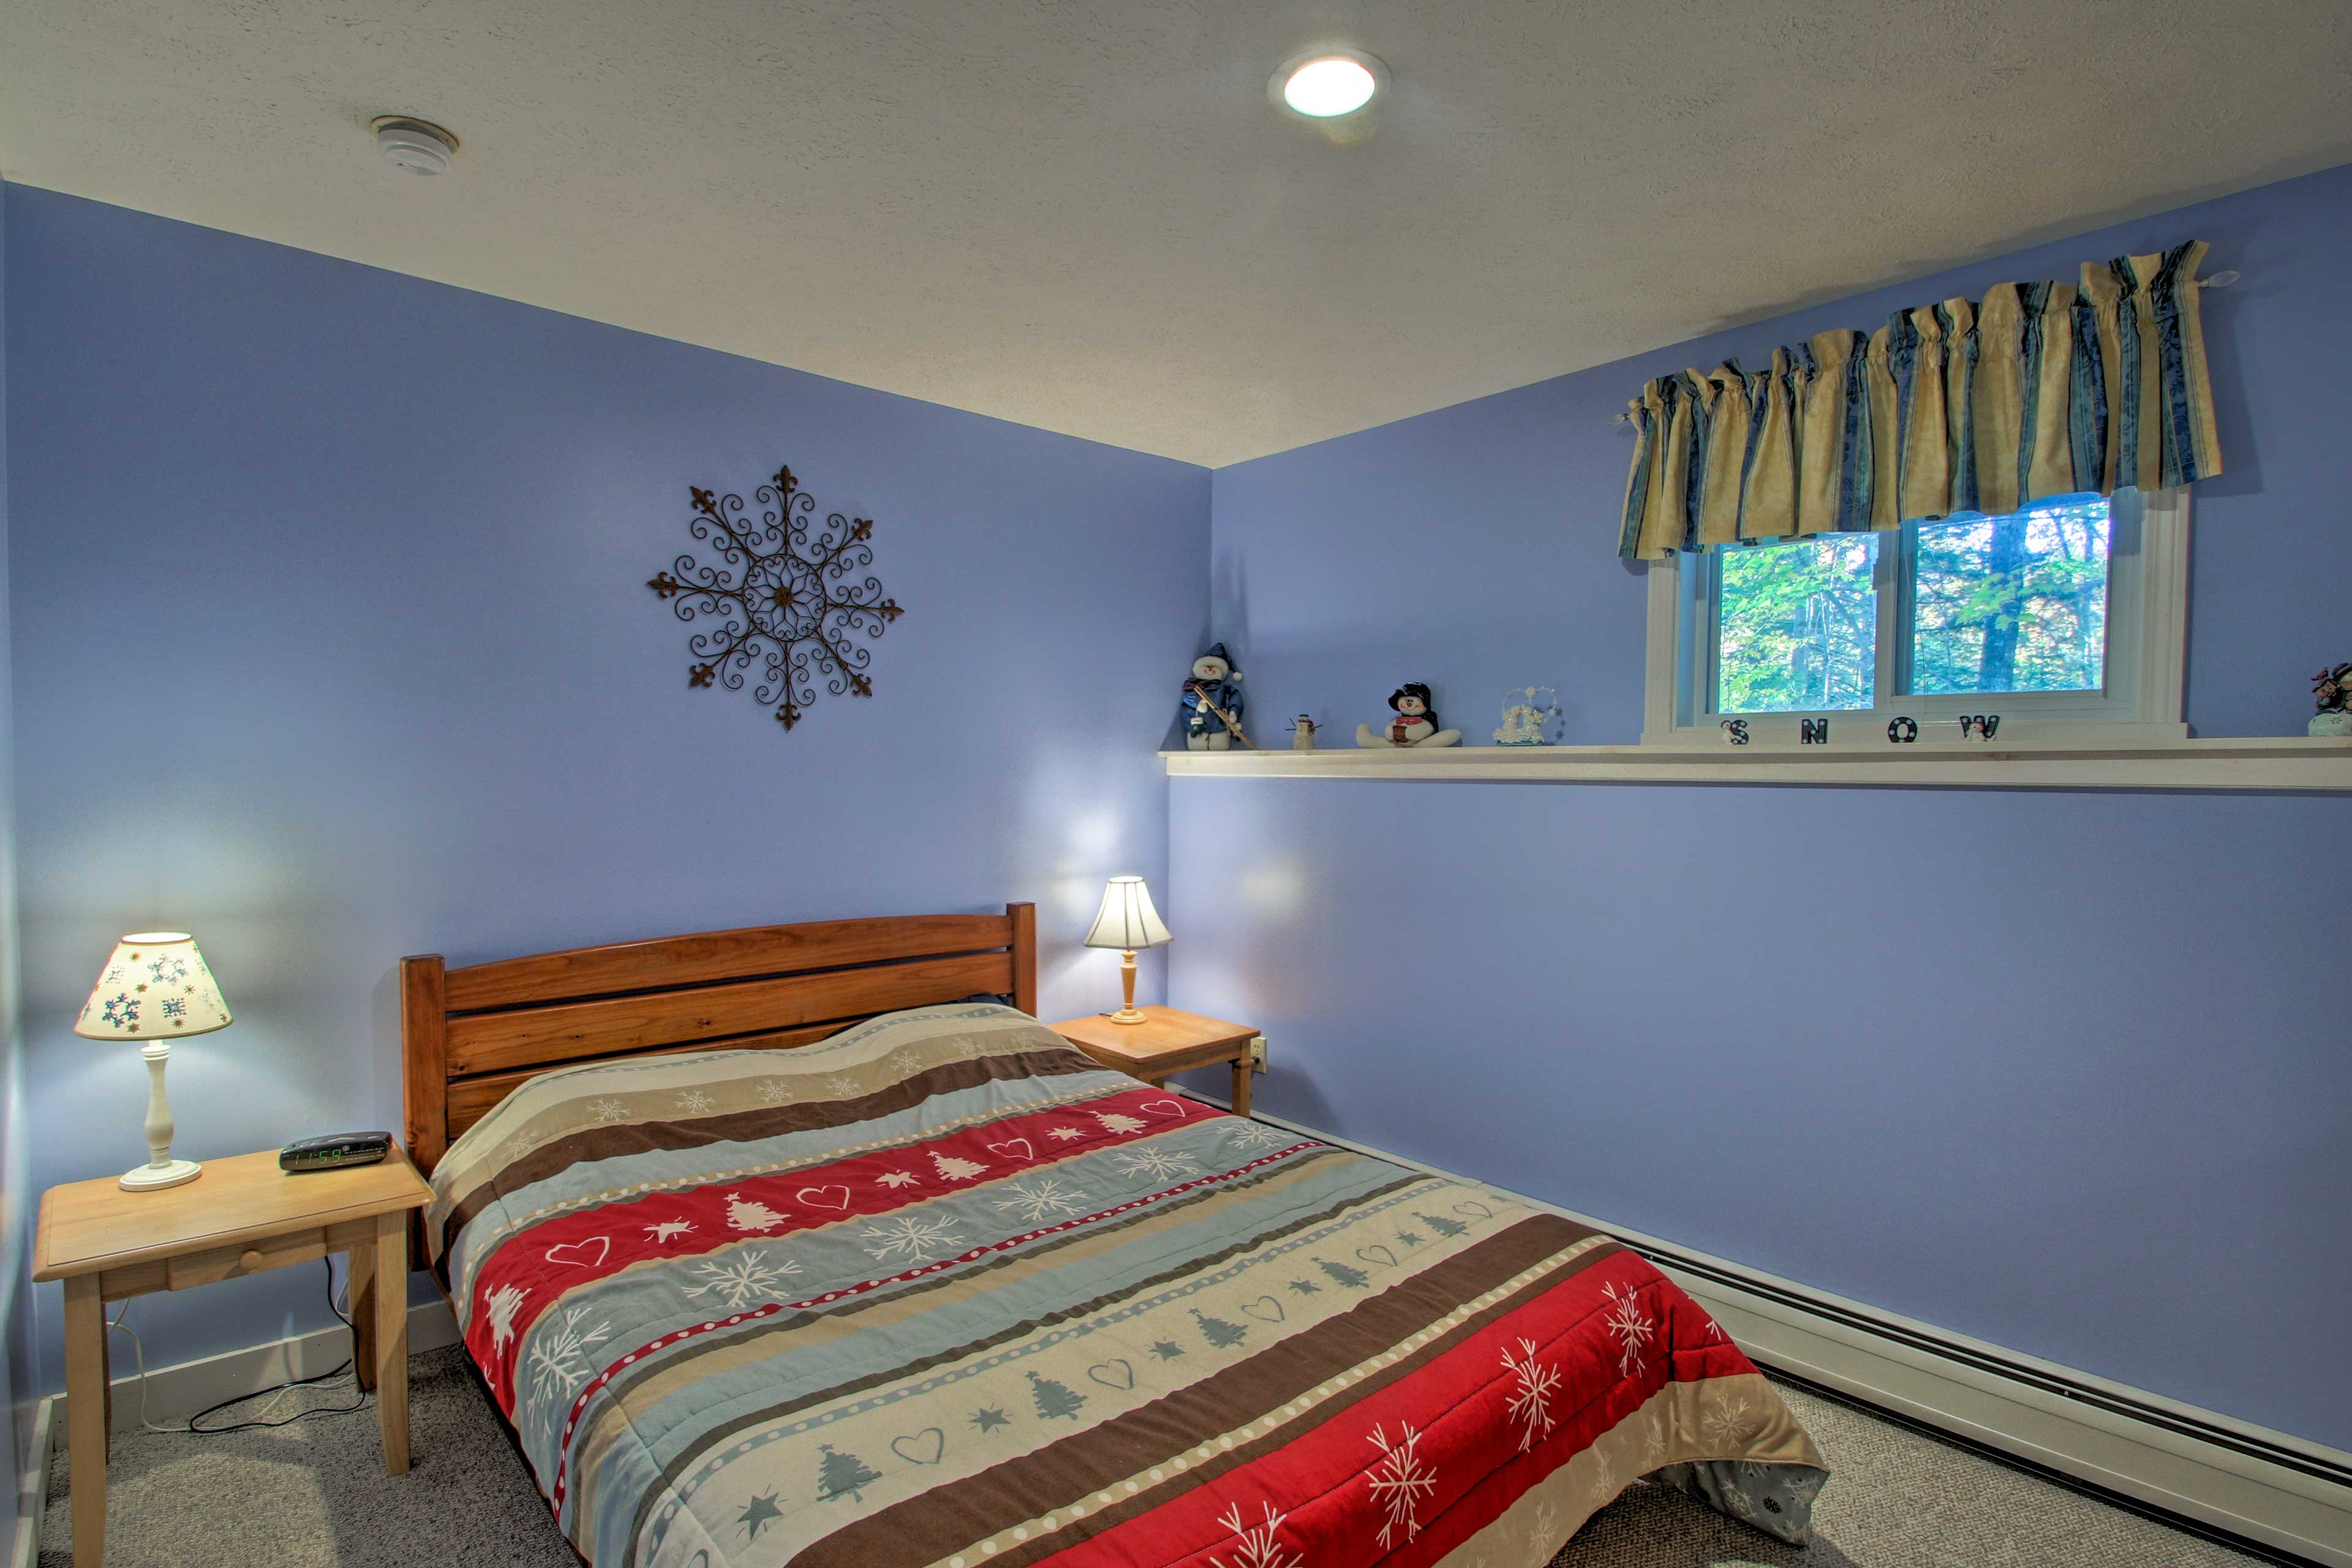 Wake up feeling refreshed after a good night's sleep in this queen bed.